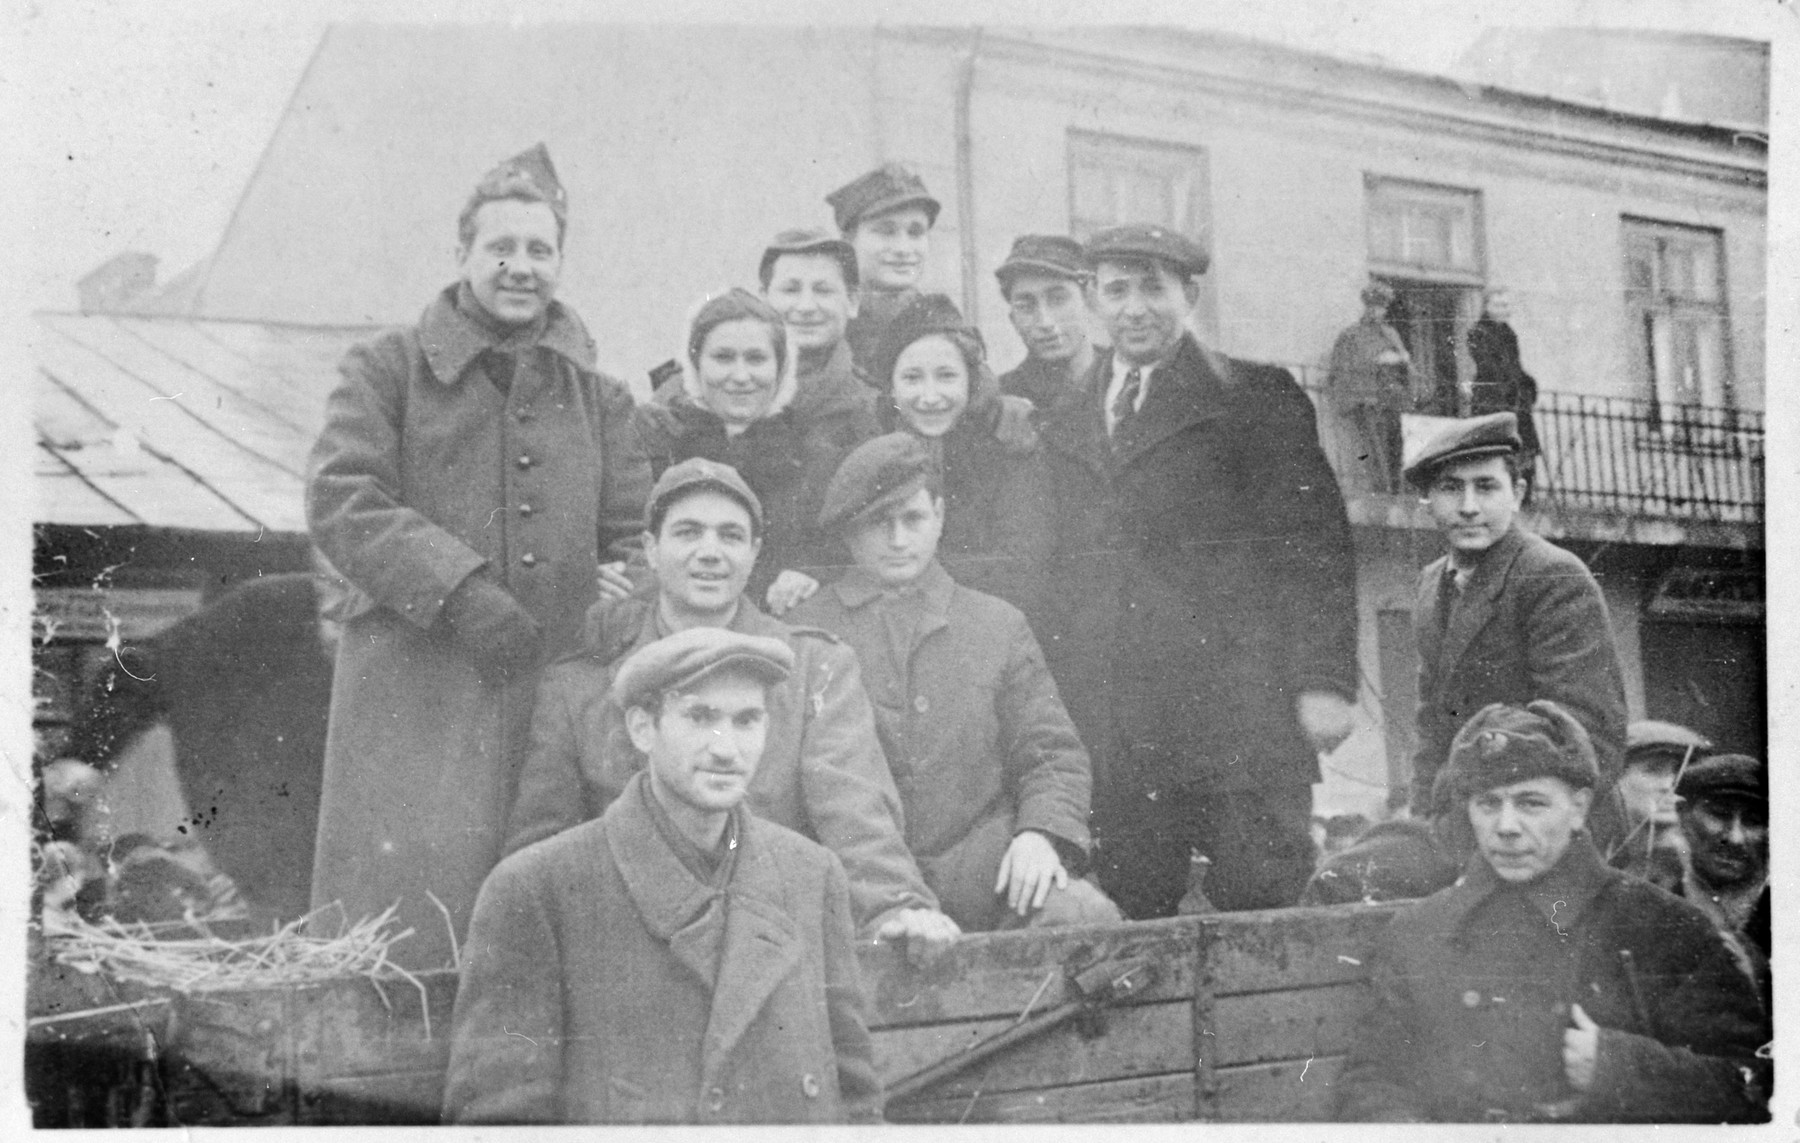 A group of newly liberated Jews pose with Soviet and American soldiers who were passing through the town of Losice.  The American soldiers had been taken captive after the Battle of the Bulge and were liberated by the Soviet army.  They were on their way back to the United States via Moscow.  After discovering that the soldiers were also Jewish, the Jews of Losice communicated with them in Yiddish.    Among those pictured are Salus Mordkowicz, Asher Weinstein, Boris Mordkowicz, Belcia Pinkus, Ajzce Szerc, and Berl Losice.